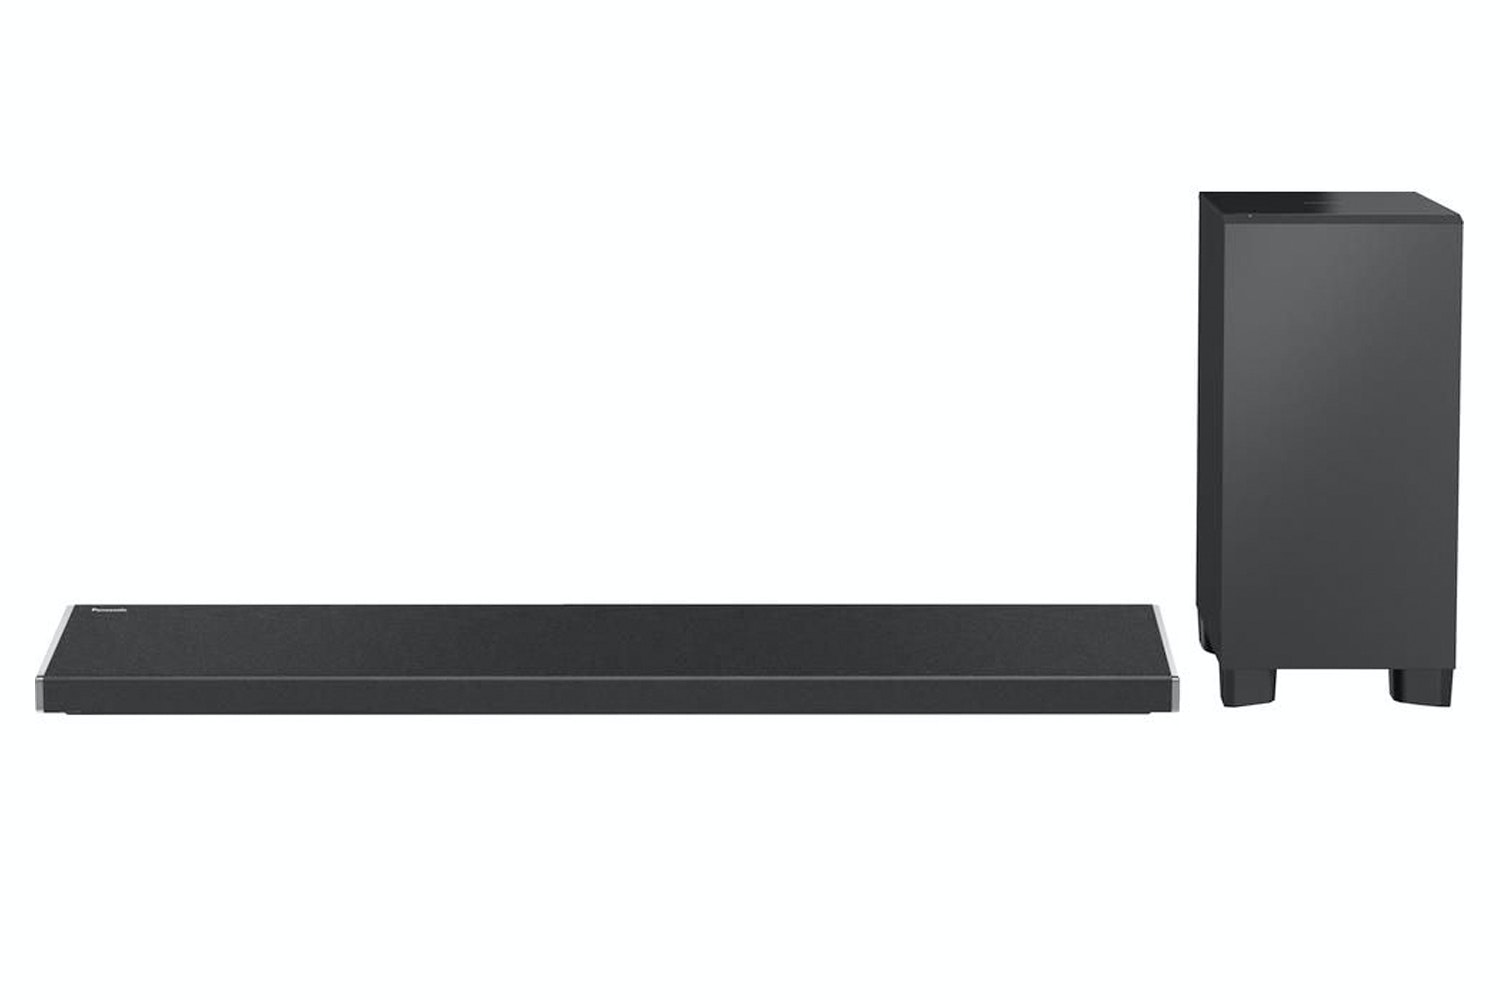 Panasonic SC-ALL70TEB 3.1ch Wireless Soundbar